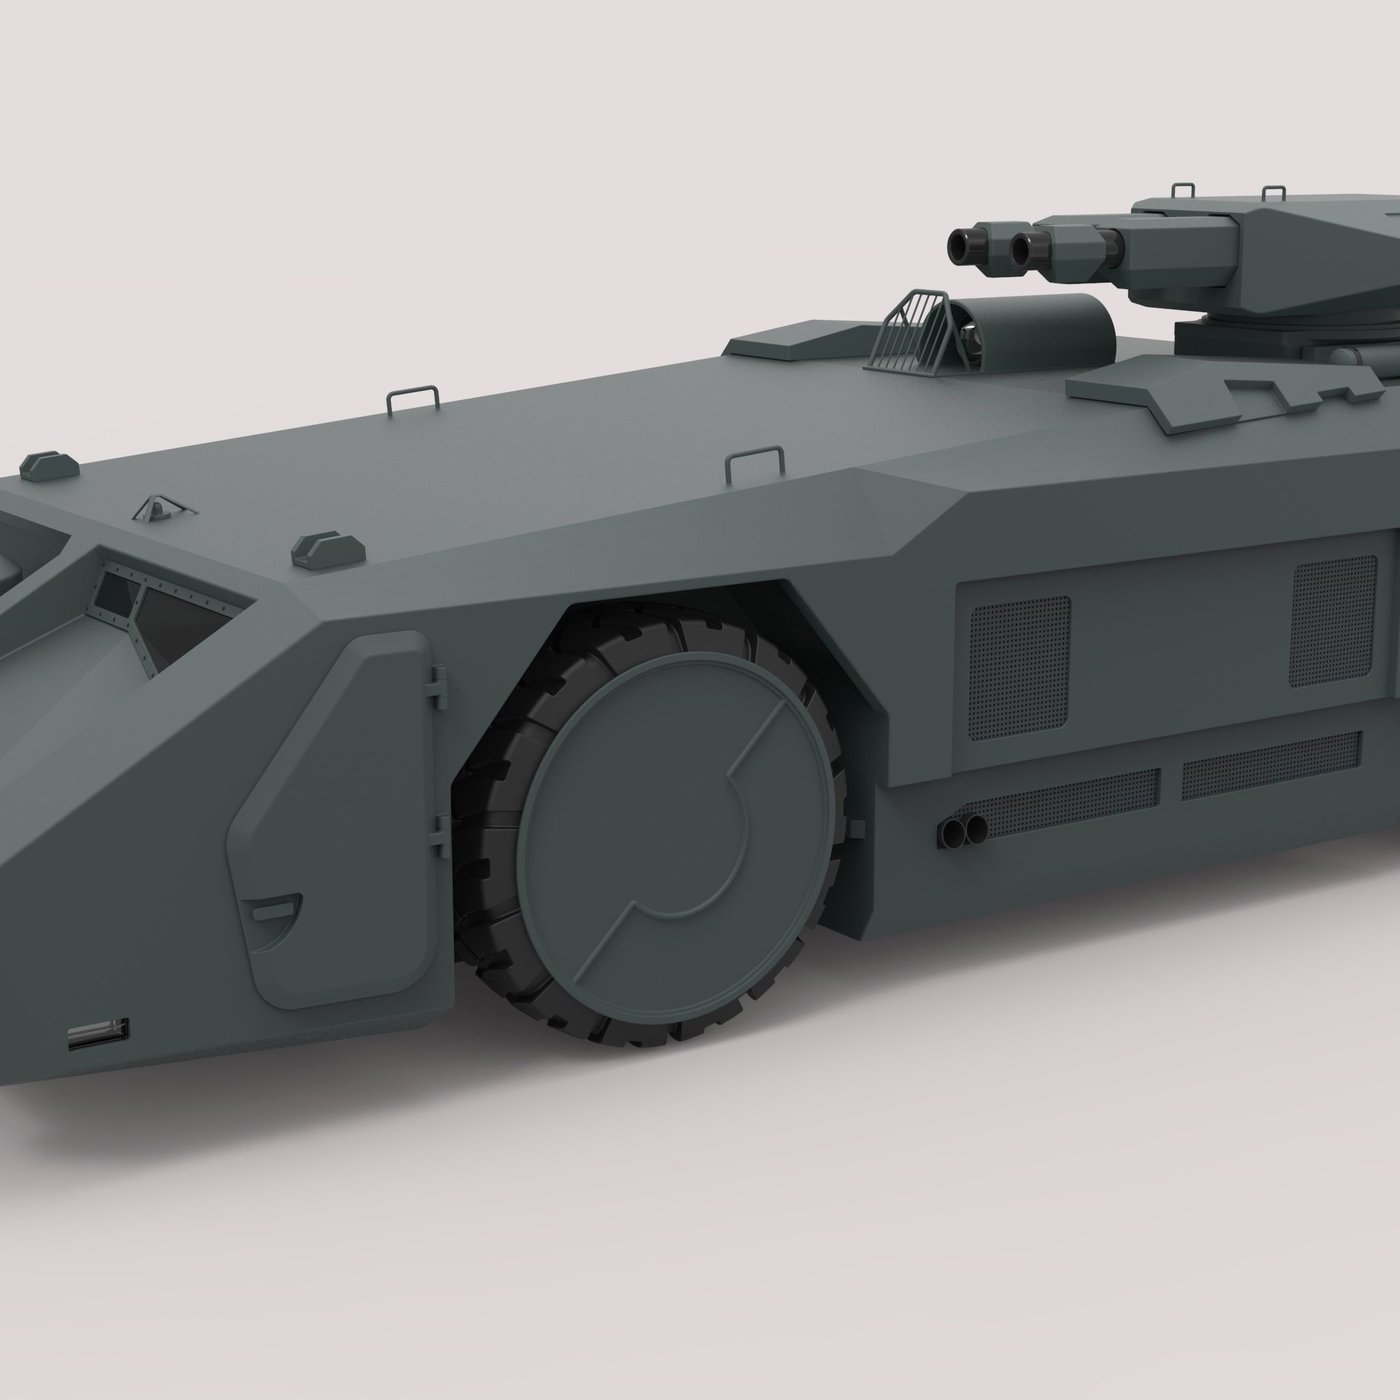 Armored personnel carrier М577 from the movie Aliens